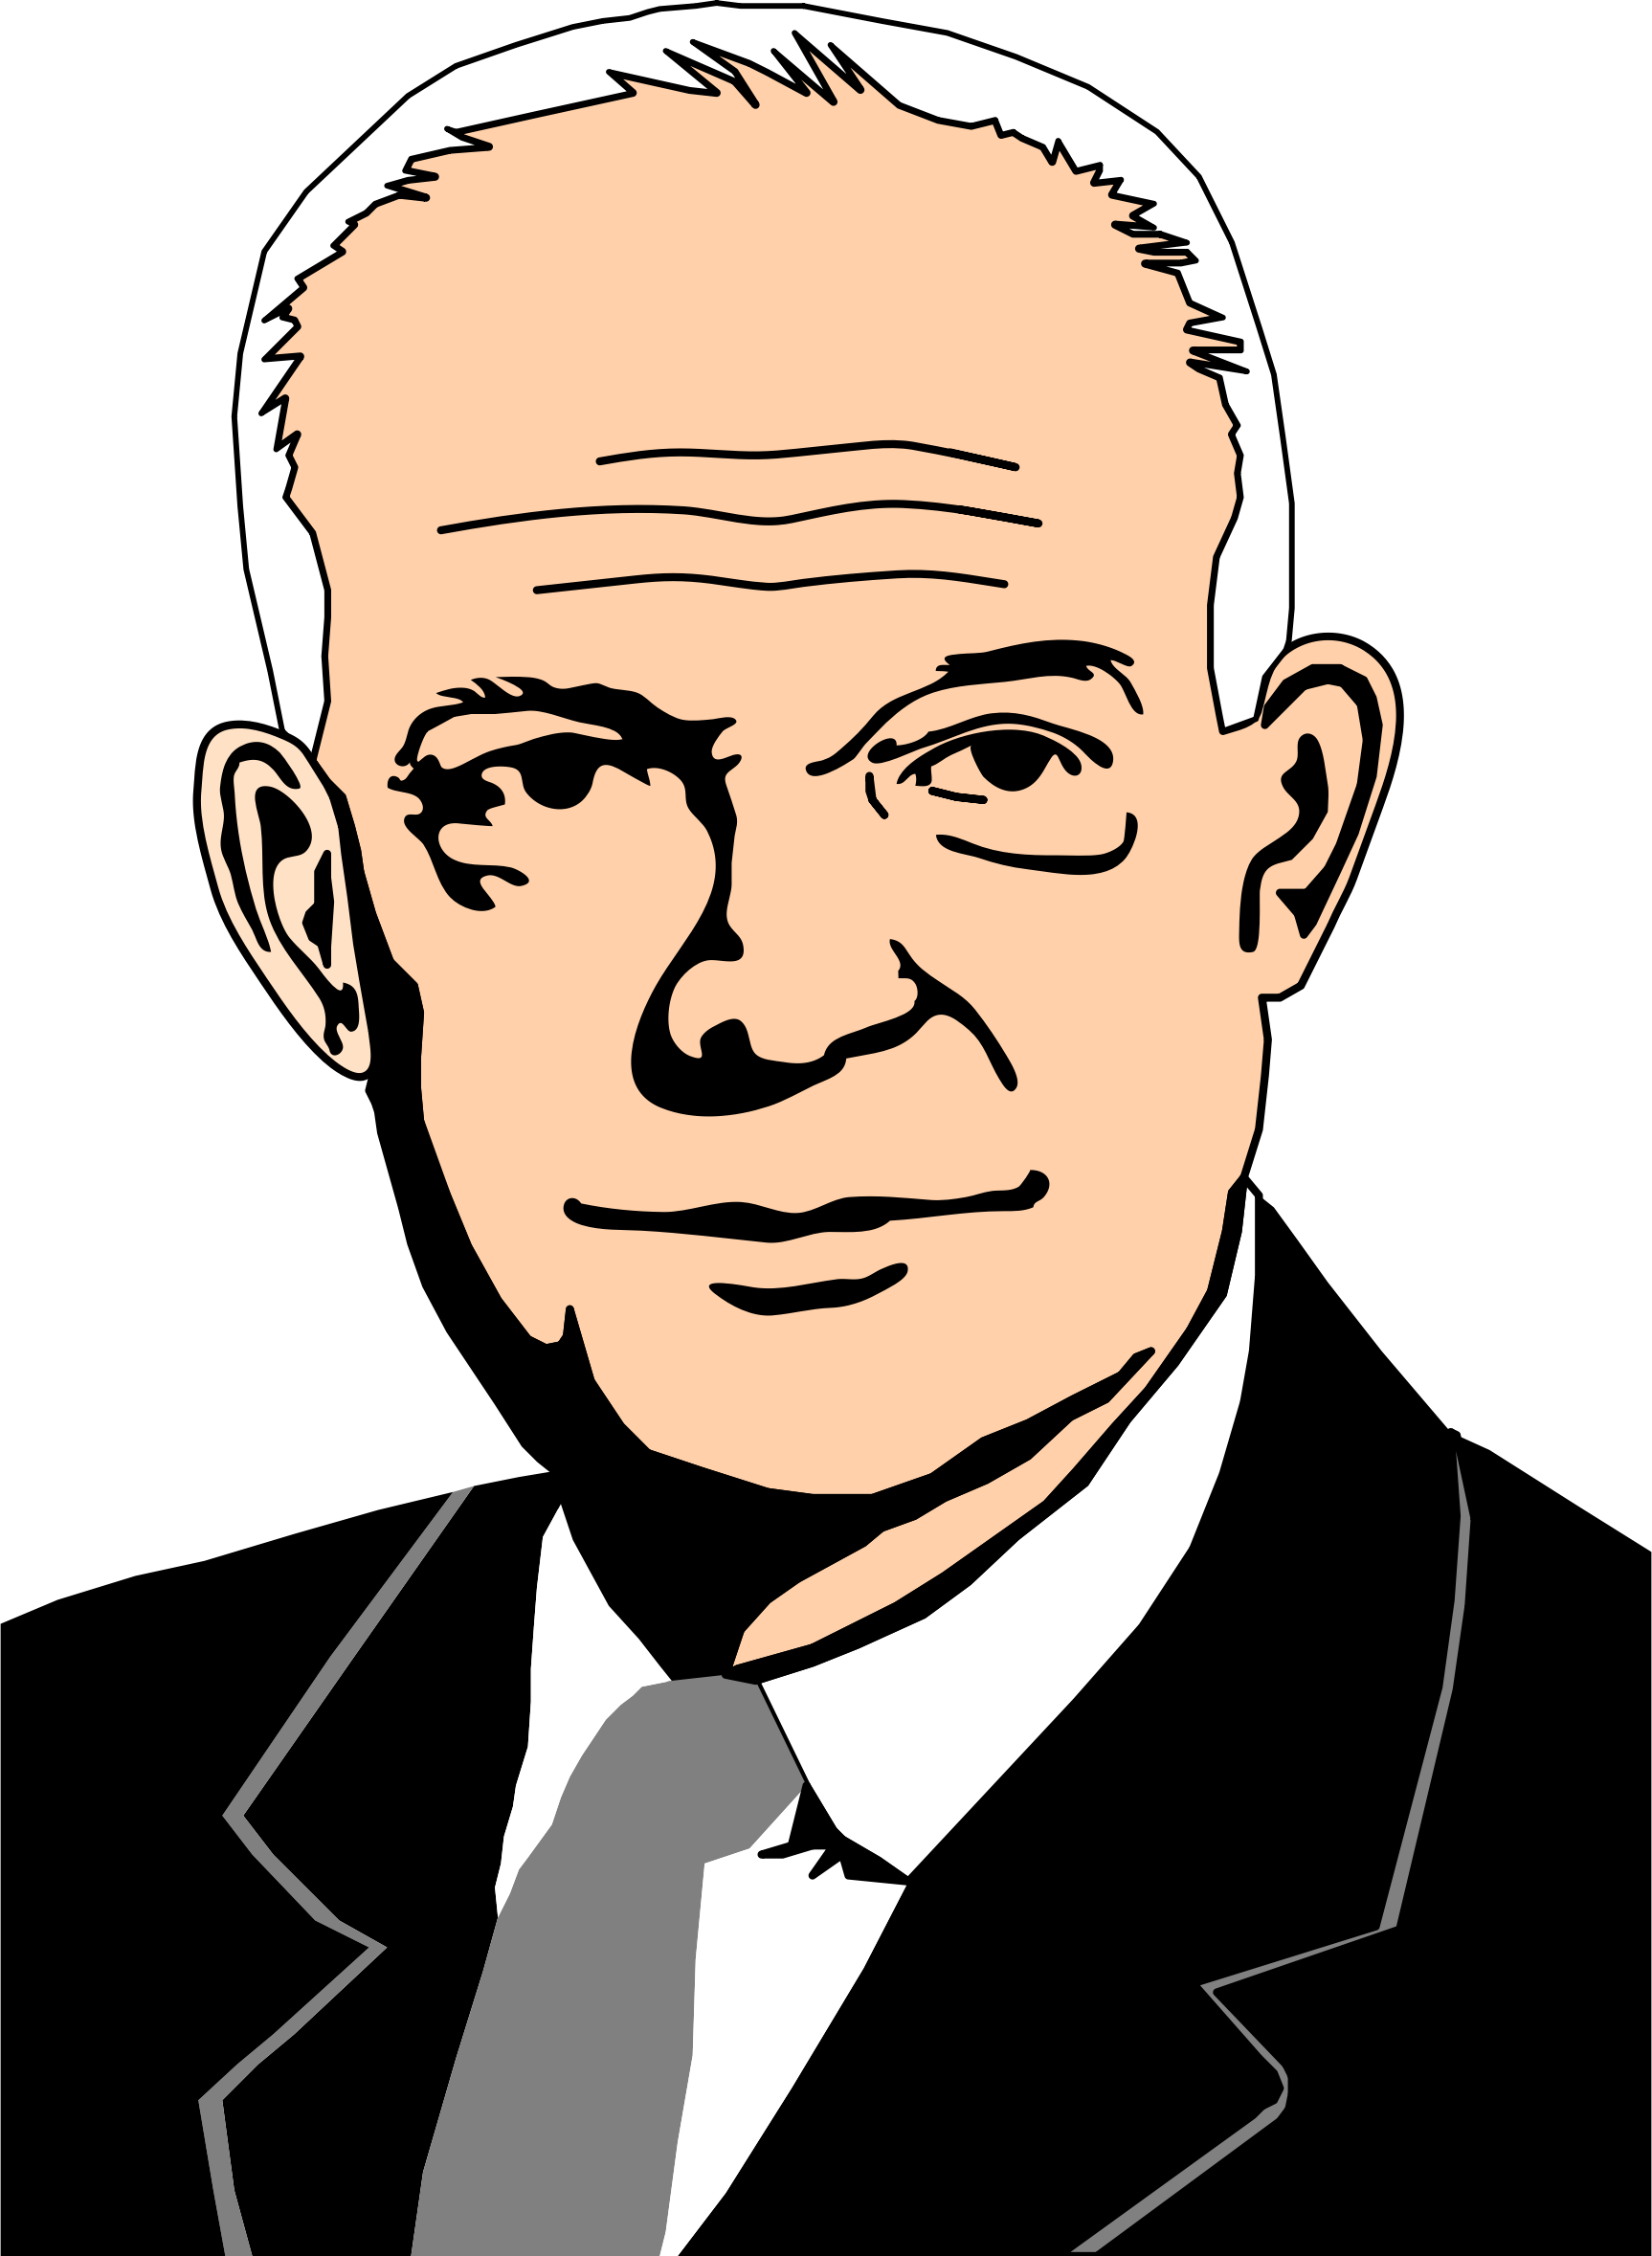 Dwight d eisenhower avatar. Photo clipart portrait